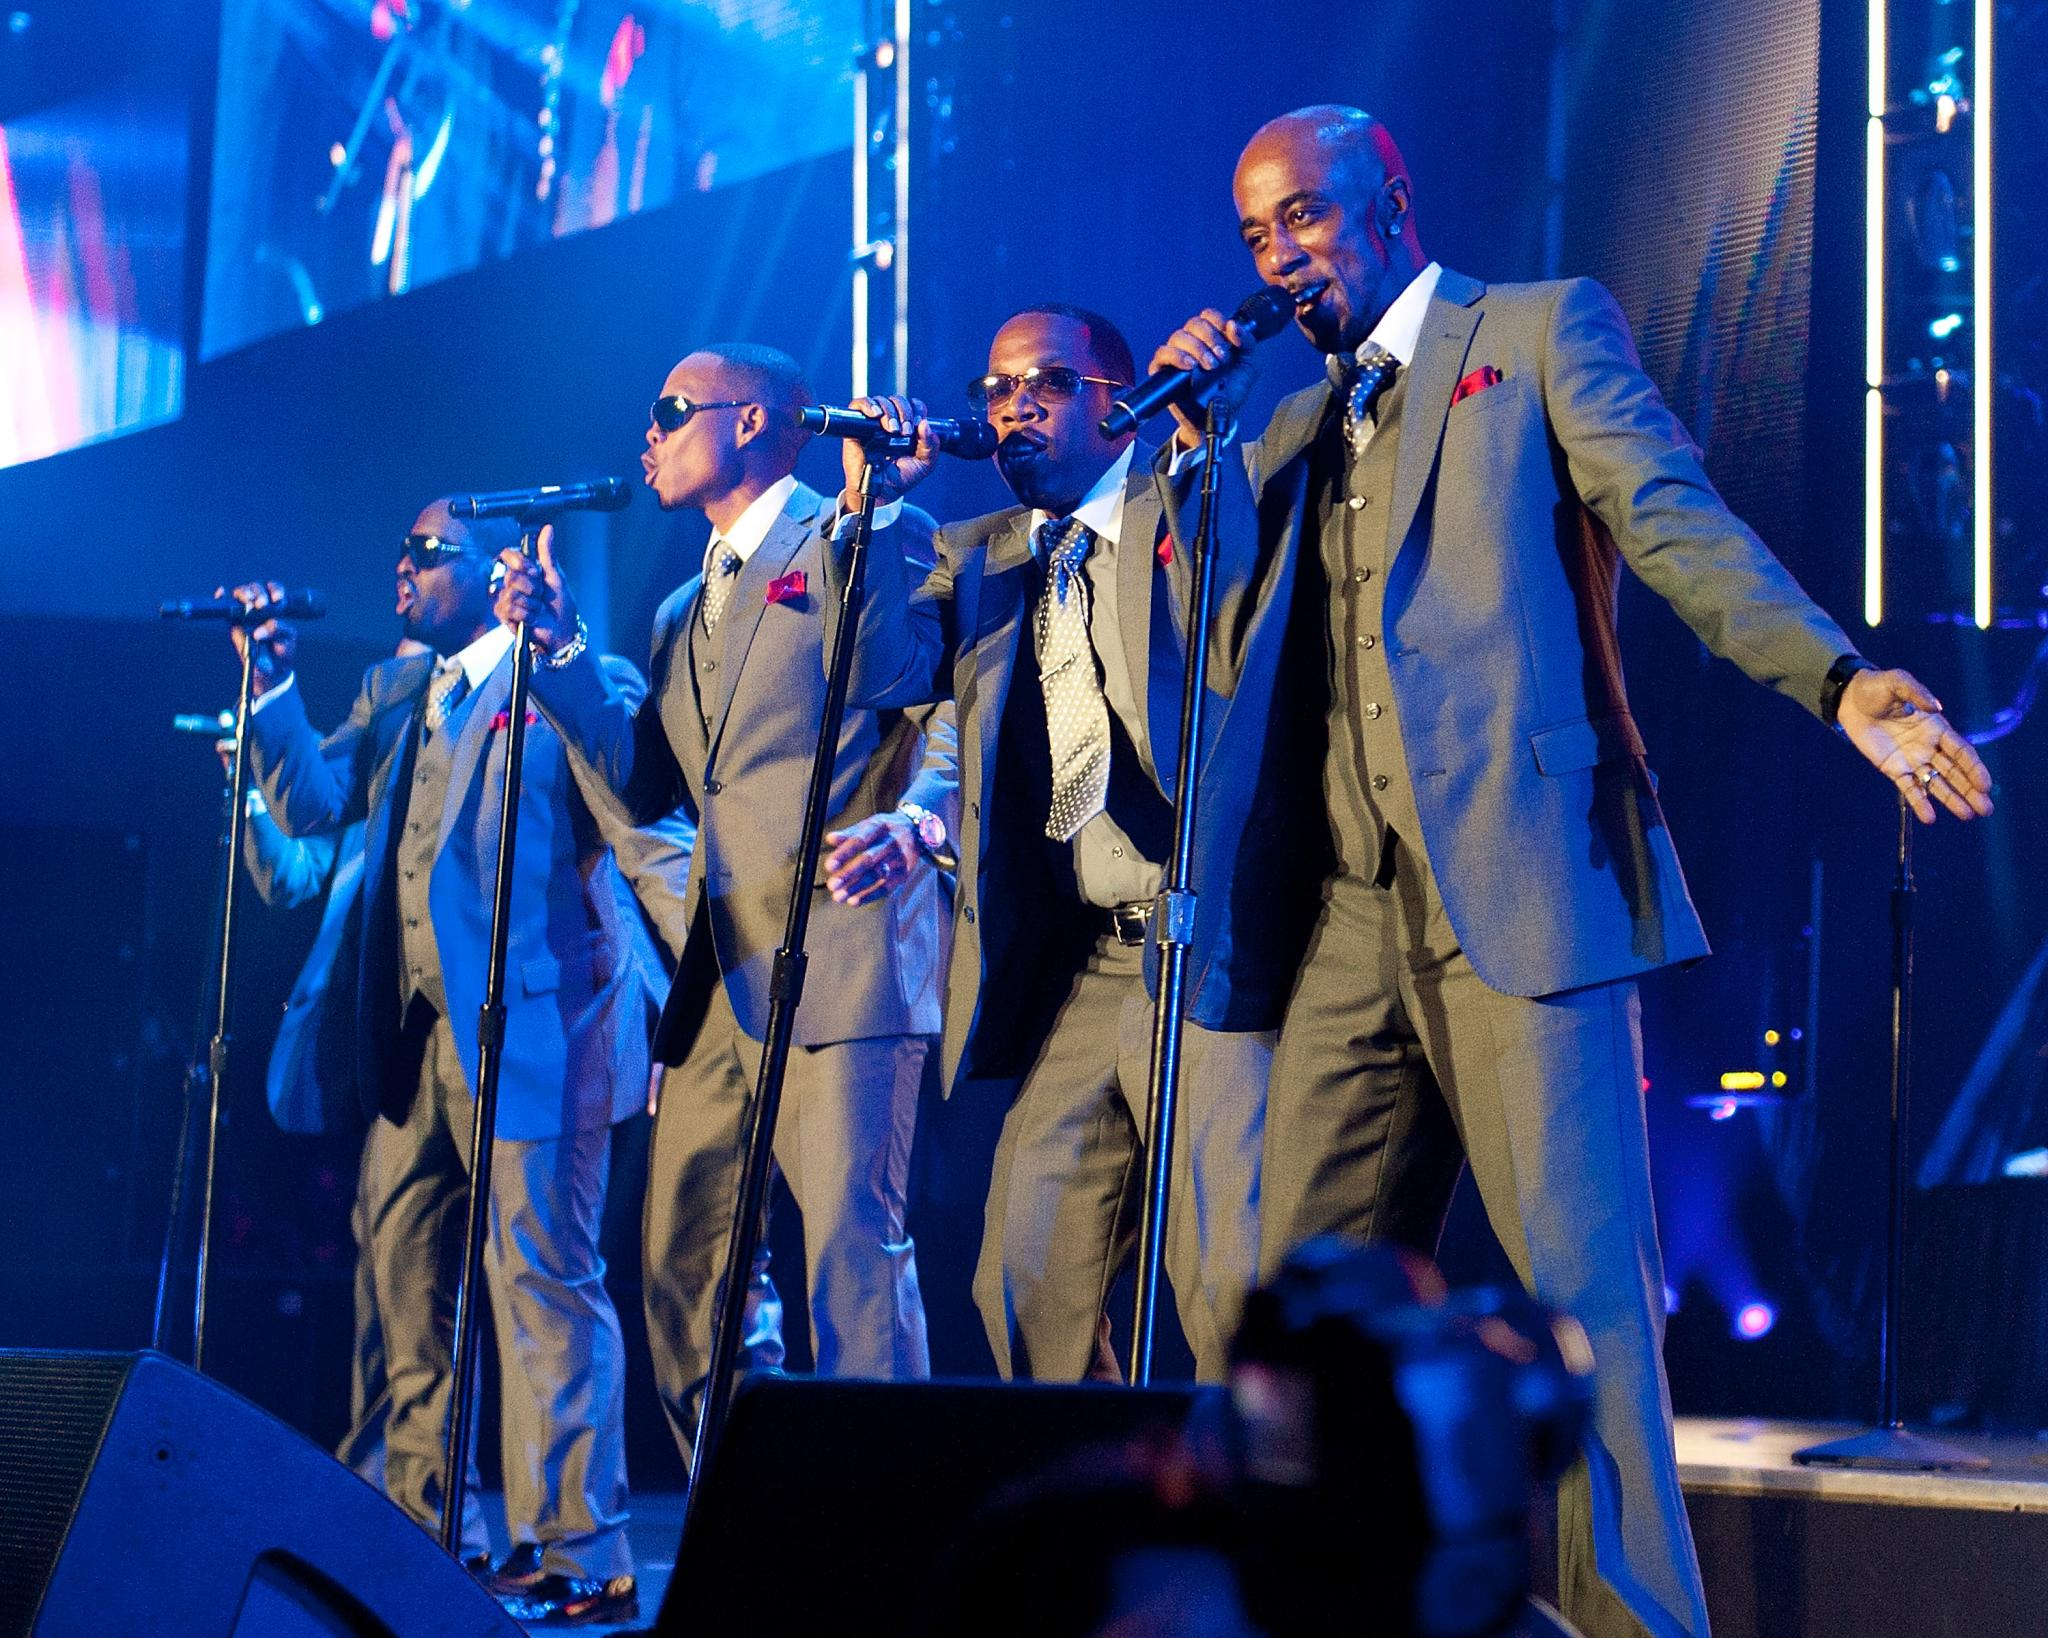 Charlie Wilson and New Edition's Soulful Hits